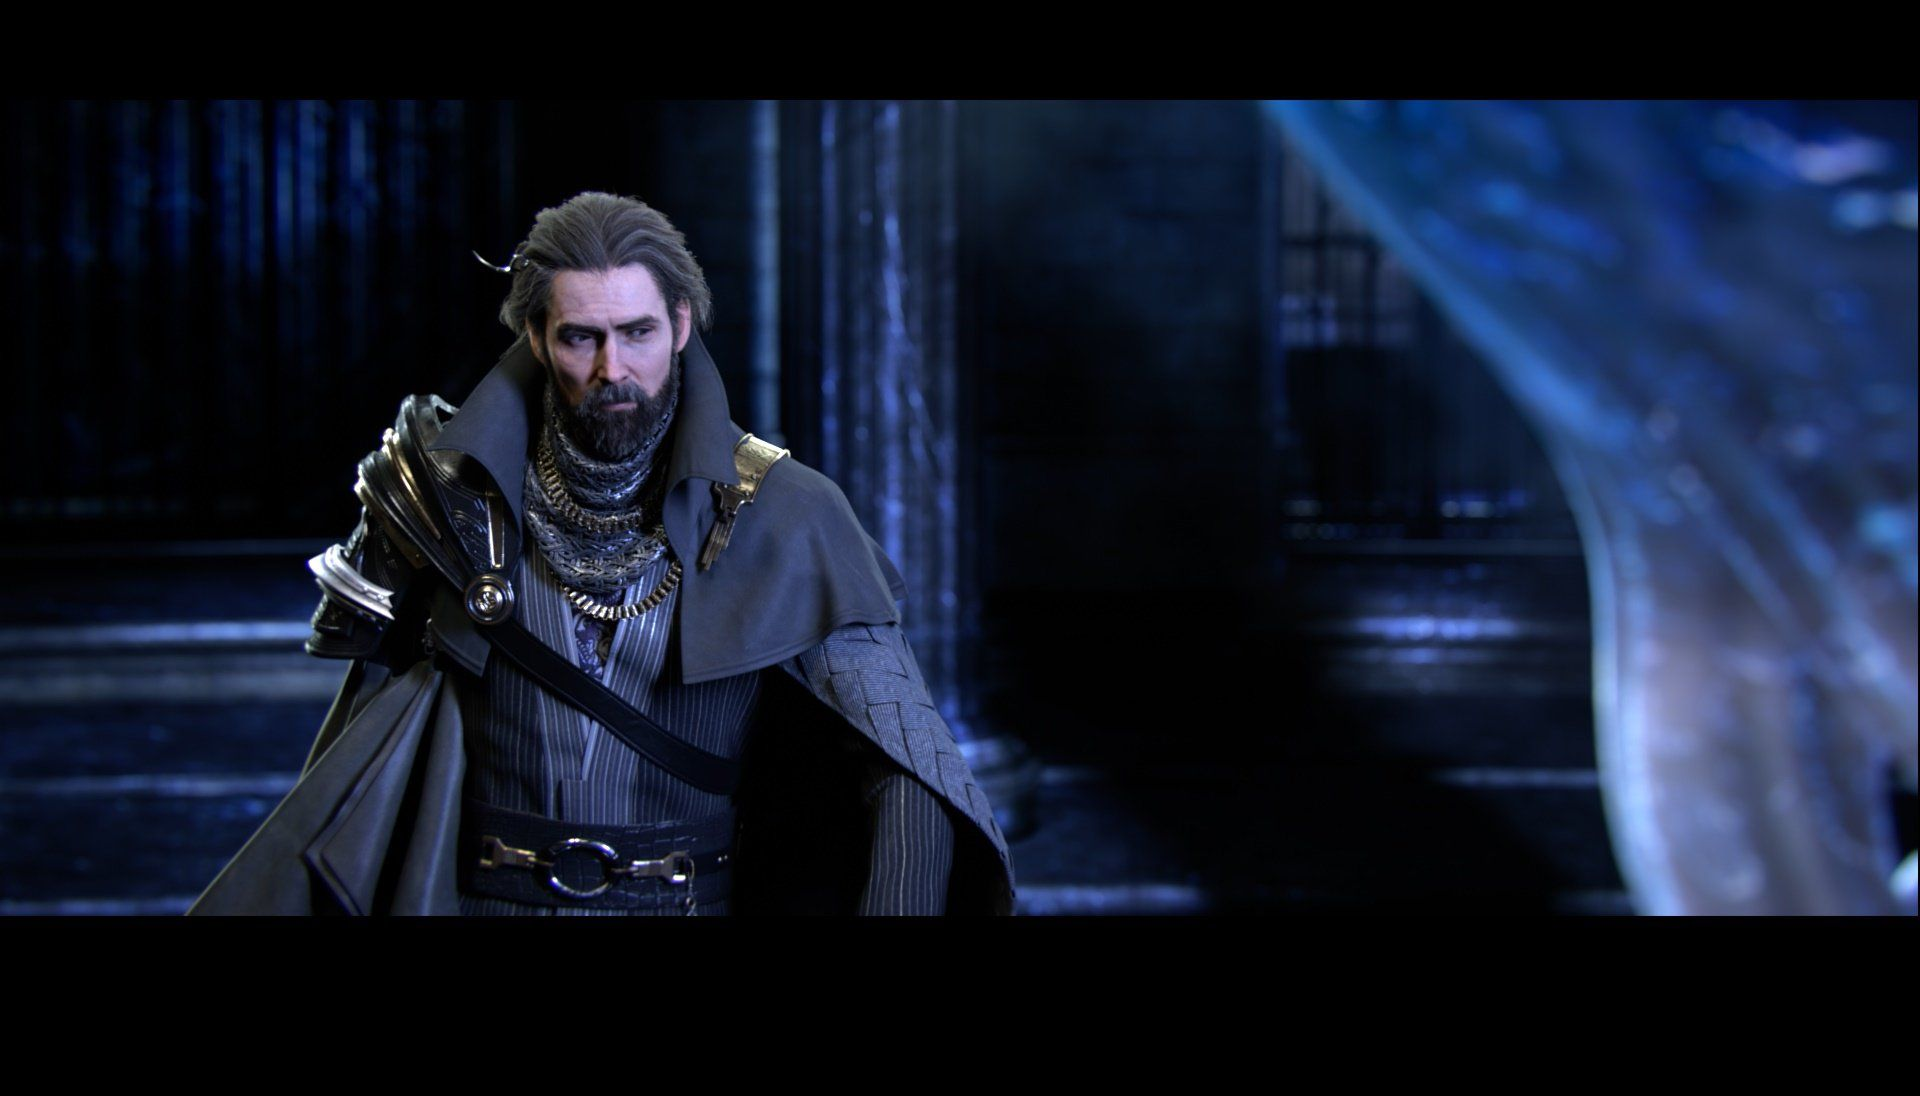 Final Fantasy XV's 7GB Day 1 Patch Detailed, New Trailer! - http://techraptor.net/content/final-fantasy-xvs-7gb-day-1-patch-detailed   Gaming, News